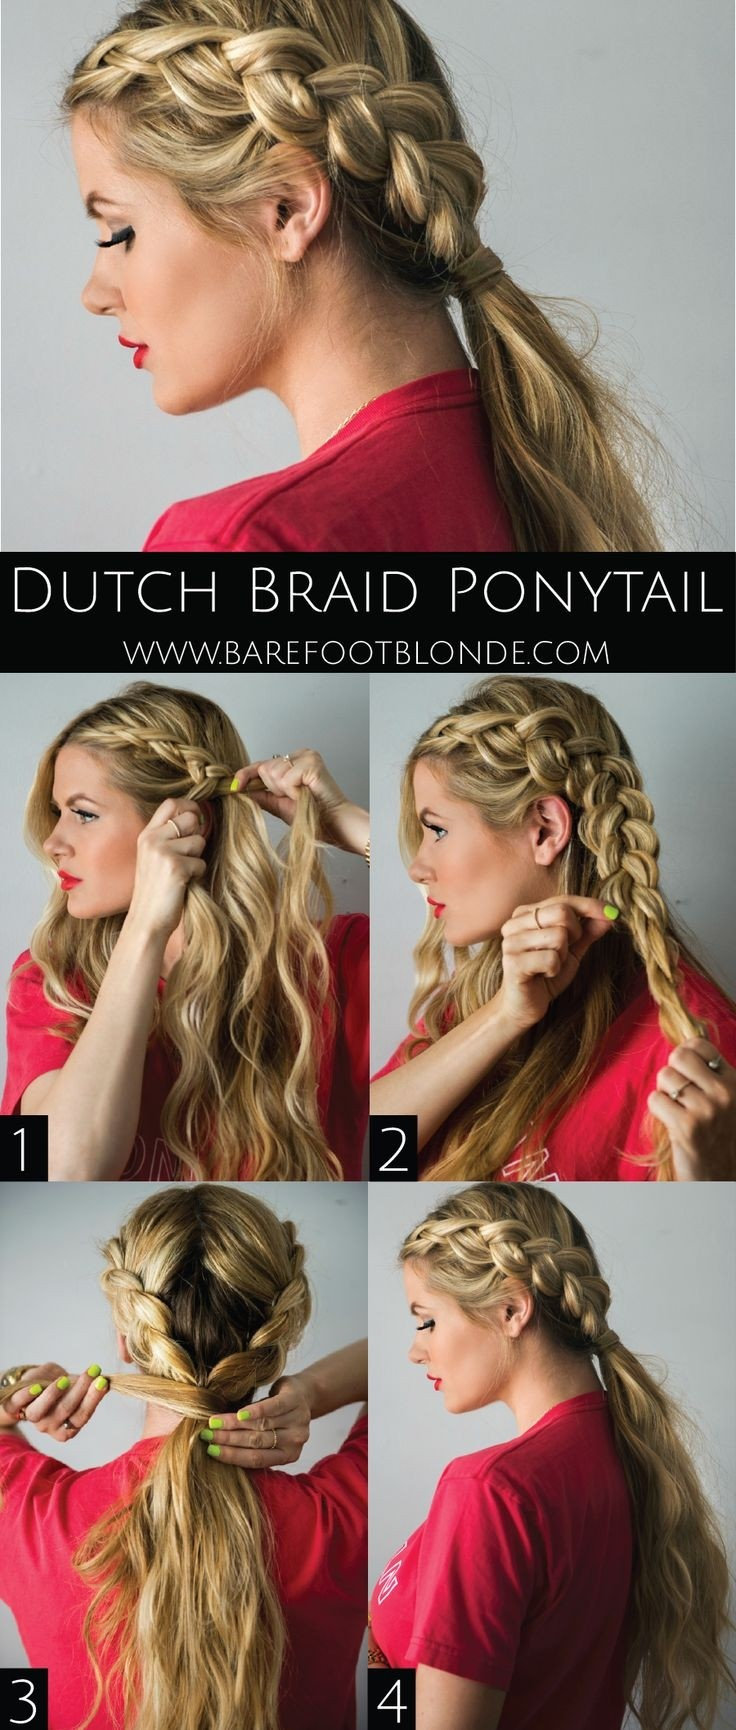 Dutch Braid Ponytail Hairstyle - Women Long Hair Style Ideas